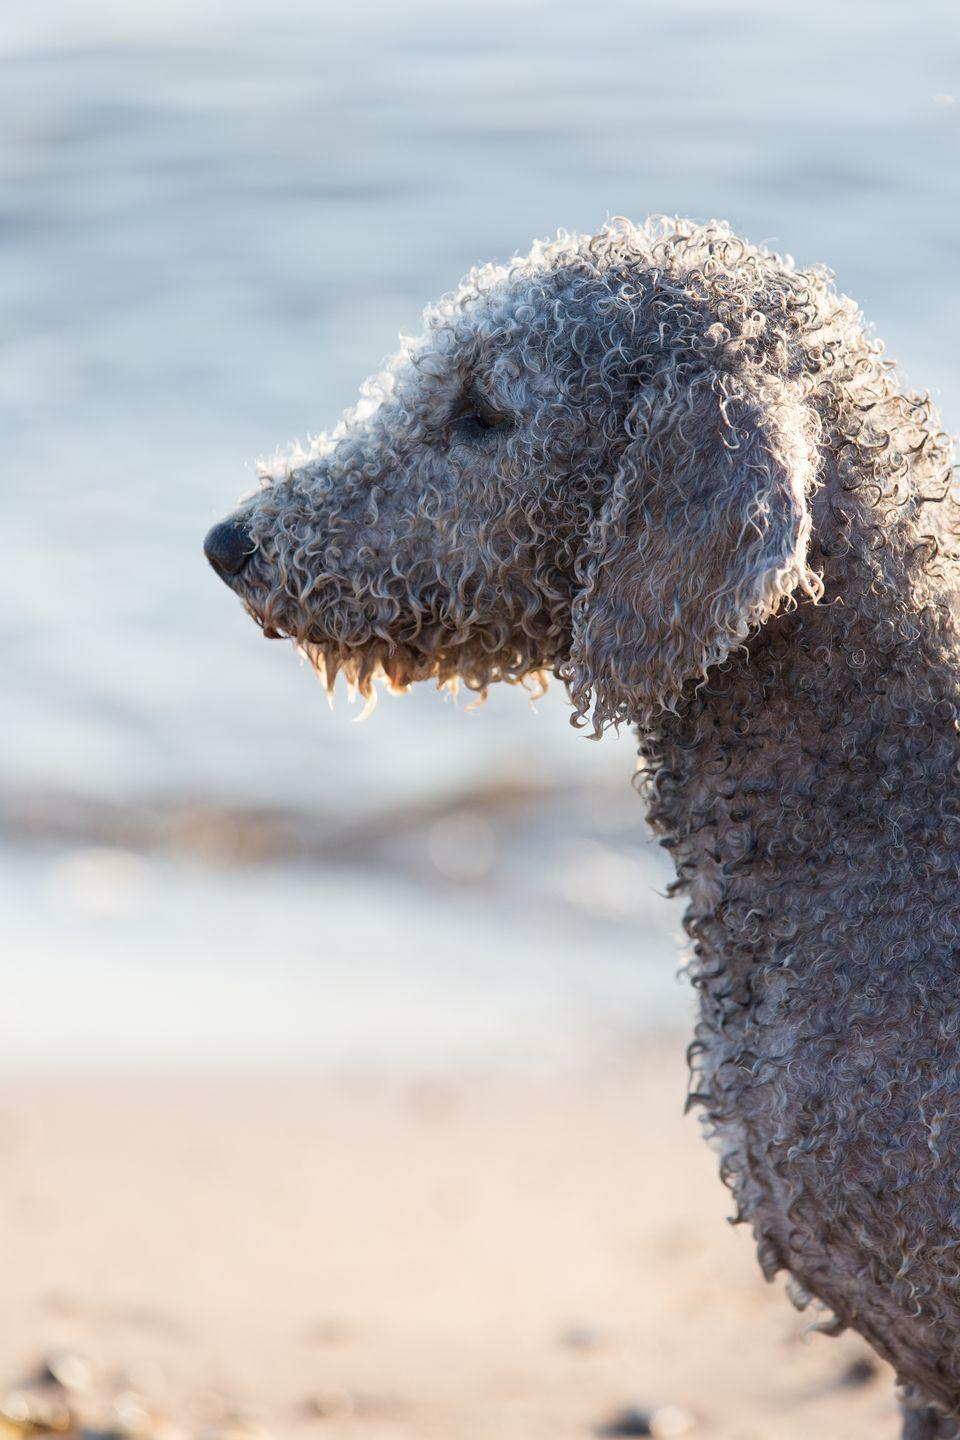 """<p>Bedlington terriers grow distinctive poofs of fur at the top of their heads, giving the sweet-looking breed a lamb-like look. These gentle, cuddly terriers make great watchdogs and downtime partners. Professionals spend a lot of time styling the curly, wooly coat for <a href=""""https://www.goodhousekeeping.com/life/pets/g4183/westminster-dog-show-breeds/"""" rel=""""nofollow noopener"""" target=""""_blank"""" data-ylk=""""slk:dog shows"""" class=""""link rapid-noclick-resp"""">dog shows</a> to get them that picture perfect. If you just want a snuggly pet, you can opt for a lower-maintenance short clip instead. </p>"""